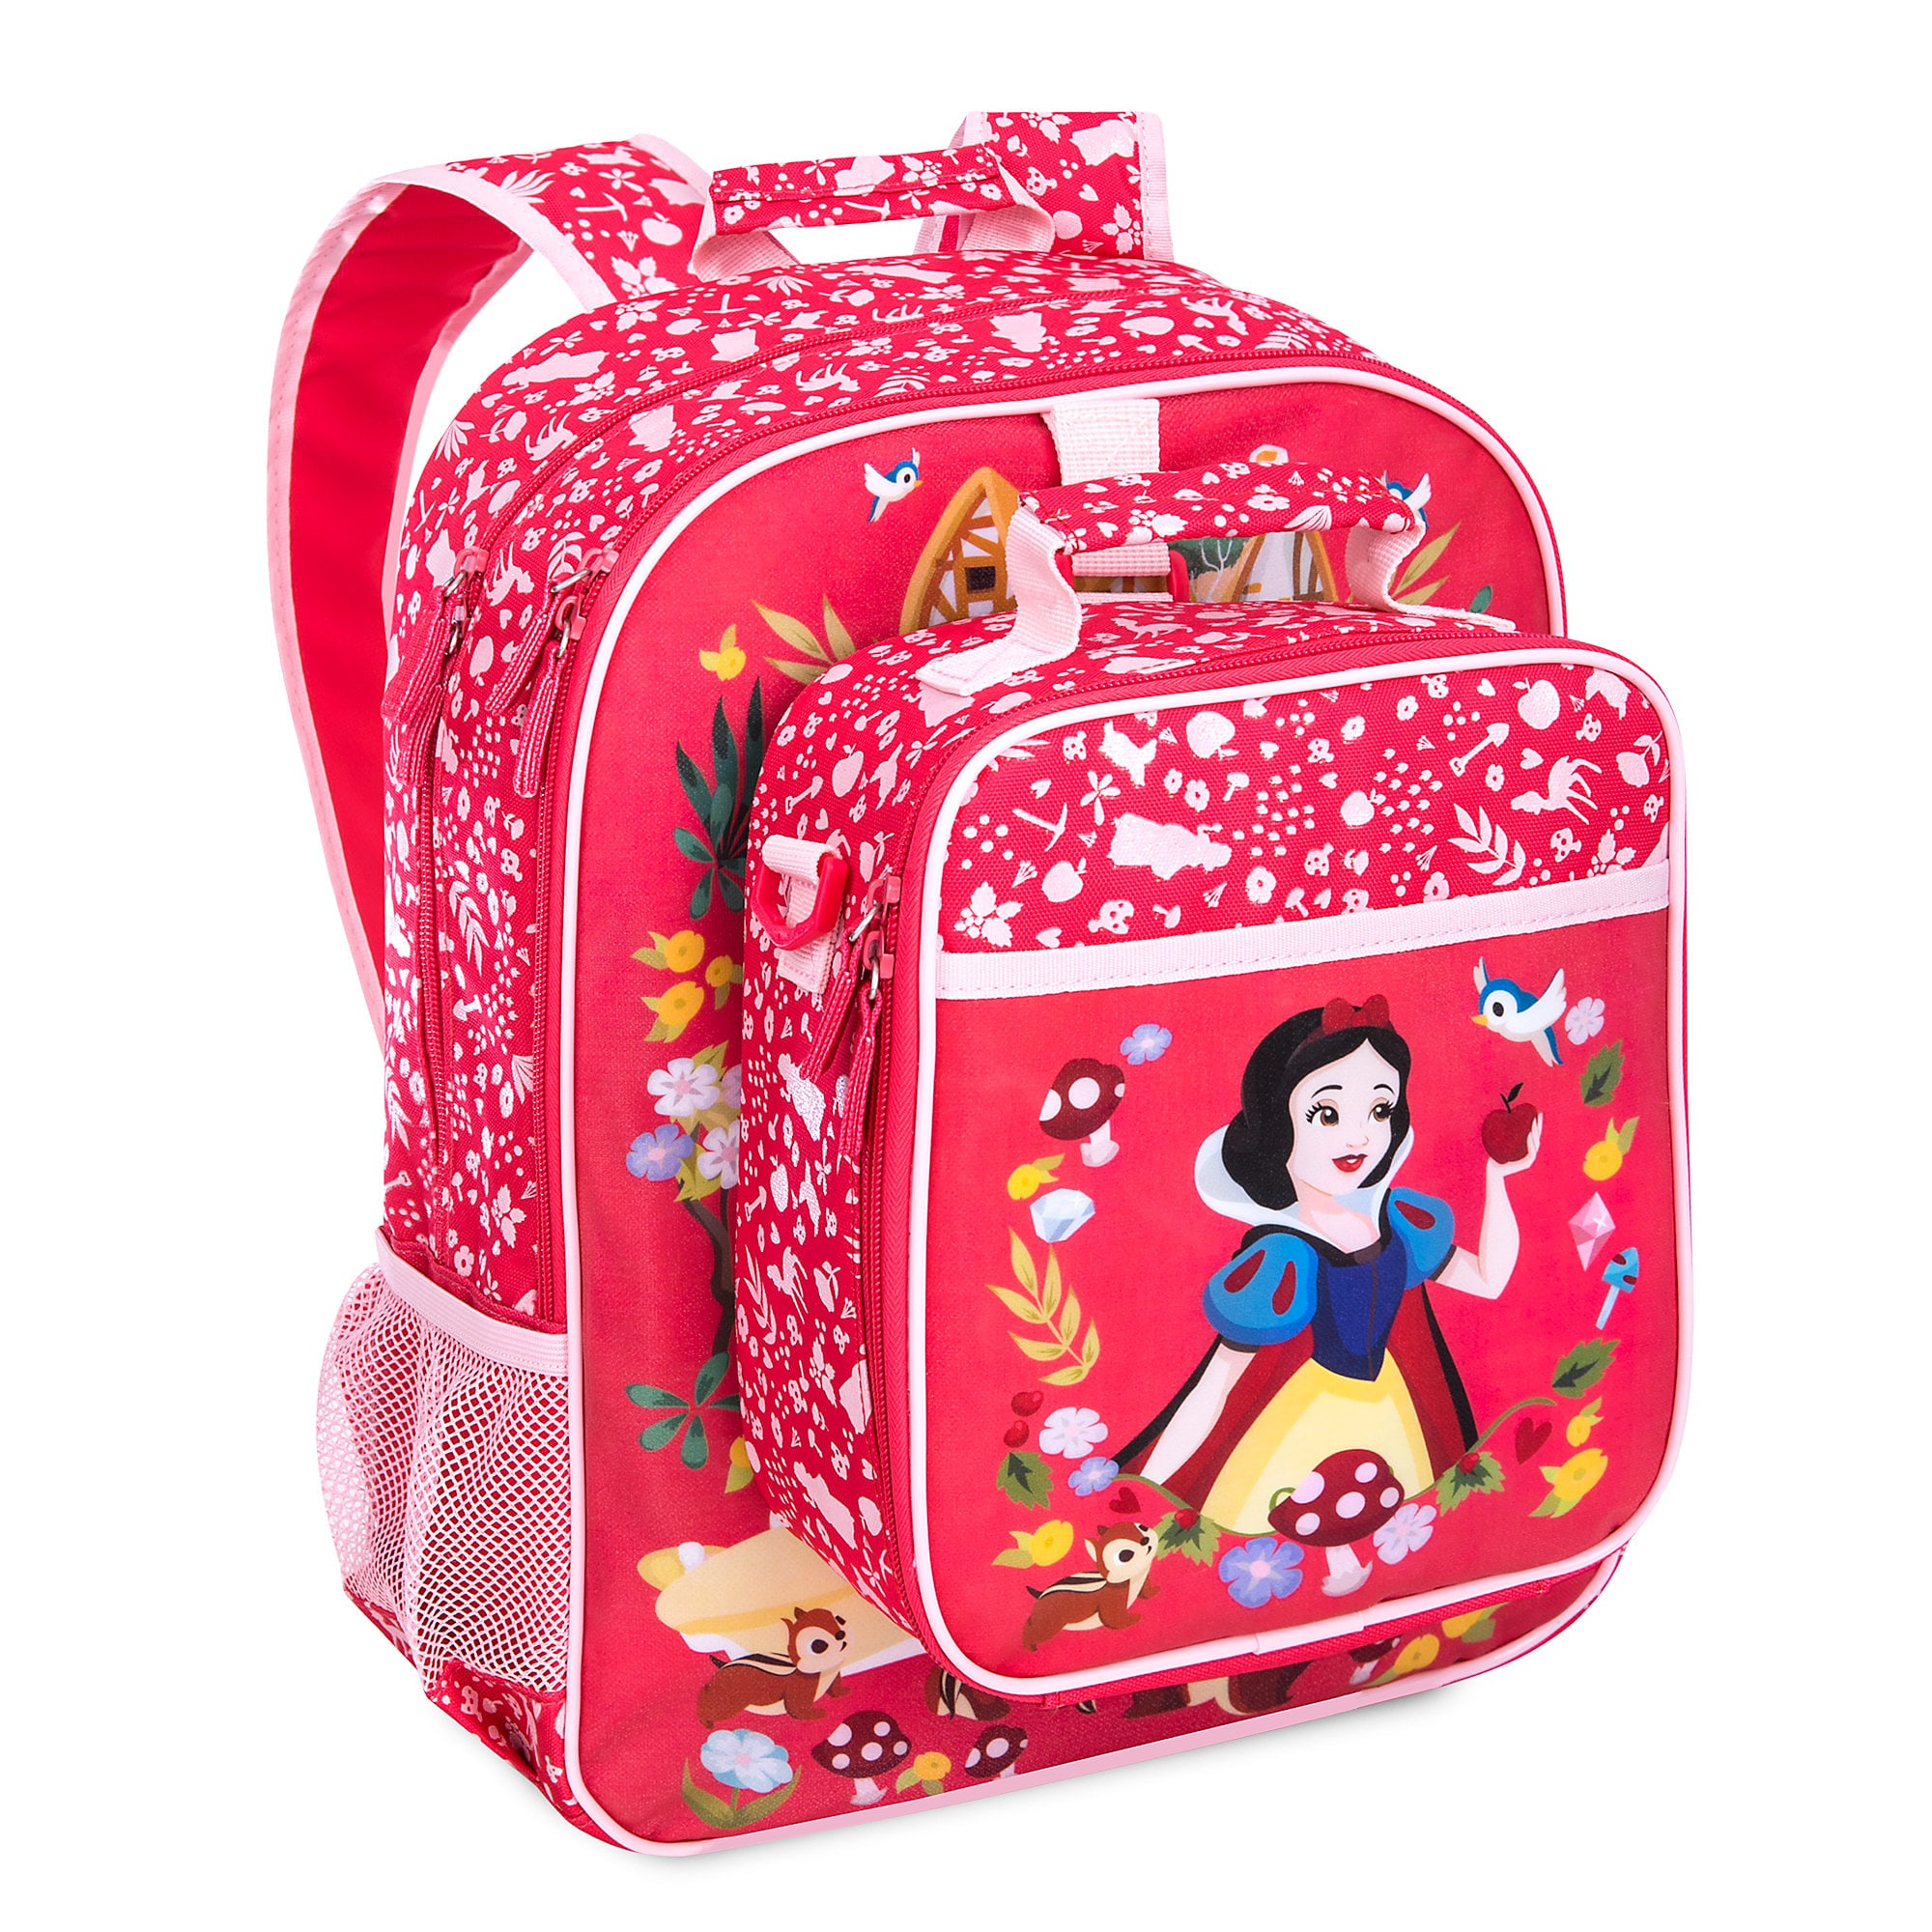 Snow White Back-to-School Collection